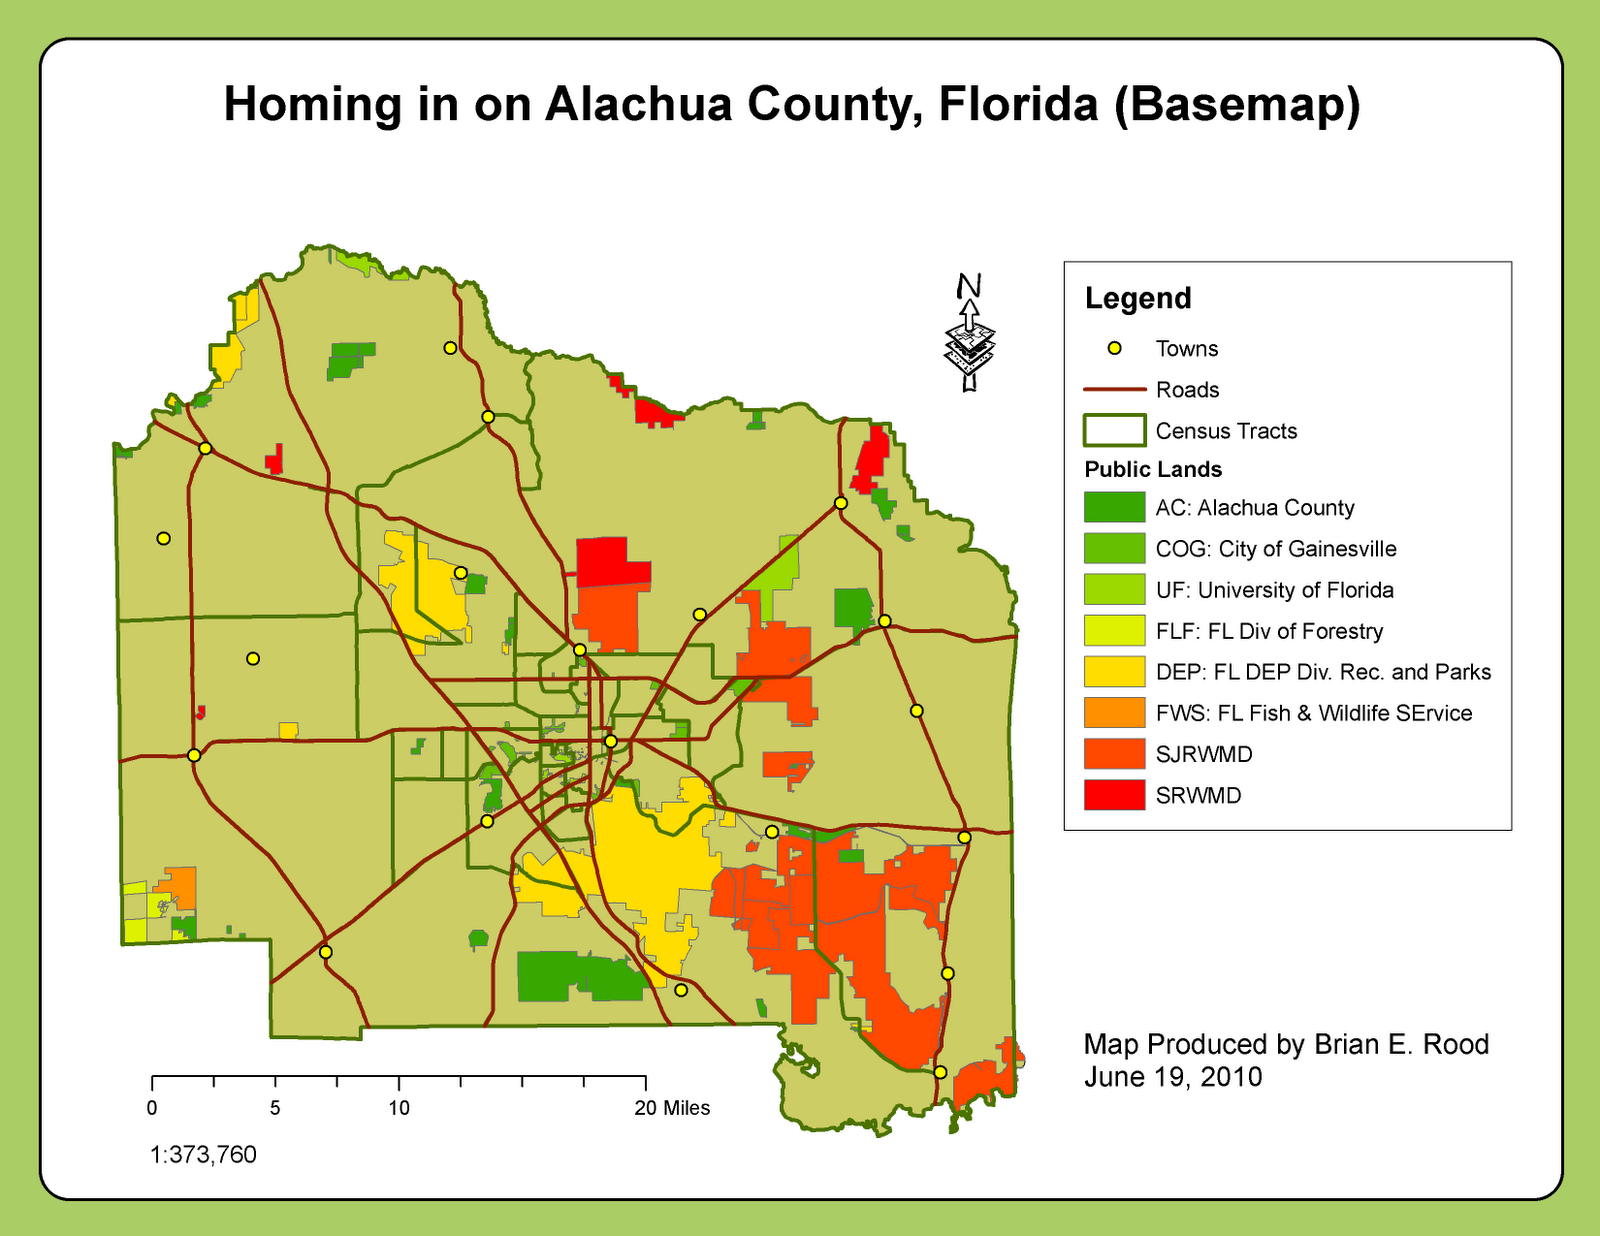 Applications in GIS - Rood: Week 6: Homing in on Alachua ... on map of polk county fl, map of pasco county fl, map of duval county fl, map of collier county fl, map of pinellas county fl, map of indian river county fl, map of jackson county fl, map of putnam county fl, map of hillsborough county fl, map of st lucie county fl, map of manatee county fl, map of orange county fl, map of st. johns county fl, map of marion county fl, map of lake county fl, map of charlotte county fl, map of brevard county fl, map of sumter county fl, map of glades county fl, map of santa rosa county fl,